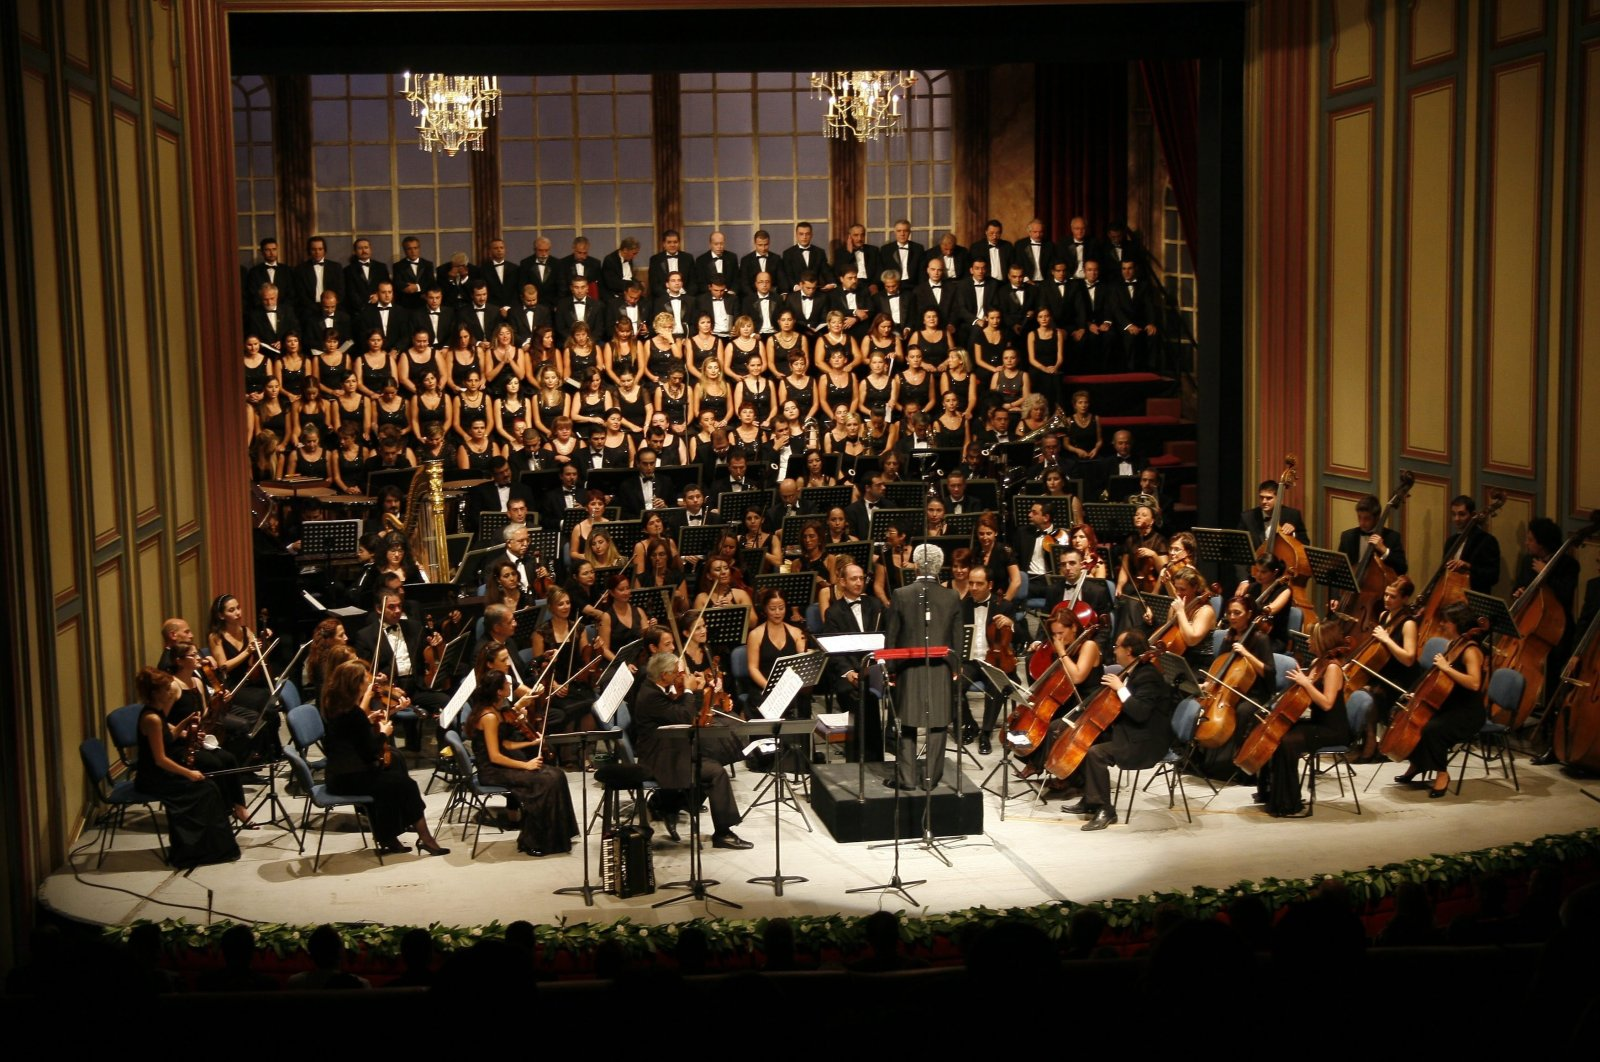 A photo from the opening concert of Ankara State Opera and Ballet in 2008-2009 art season in the capital Ankara. (Photo by Emre Karaca)